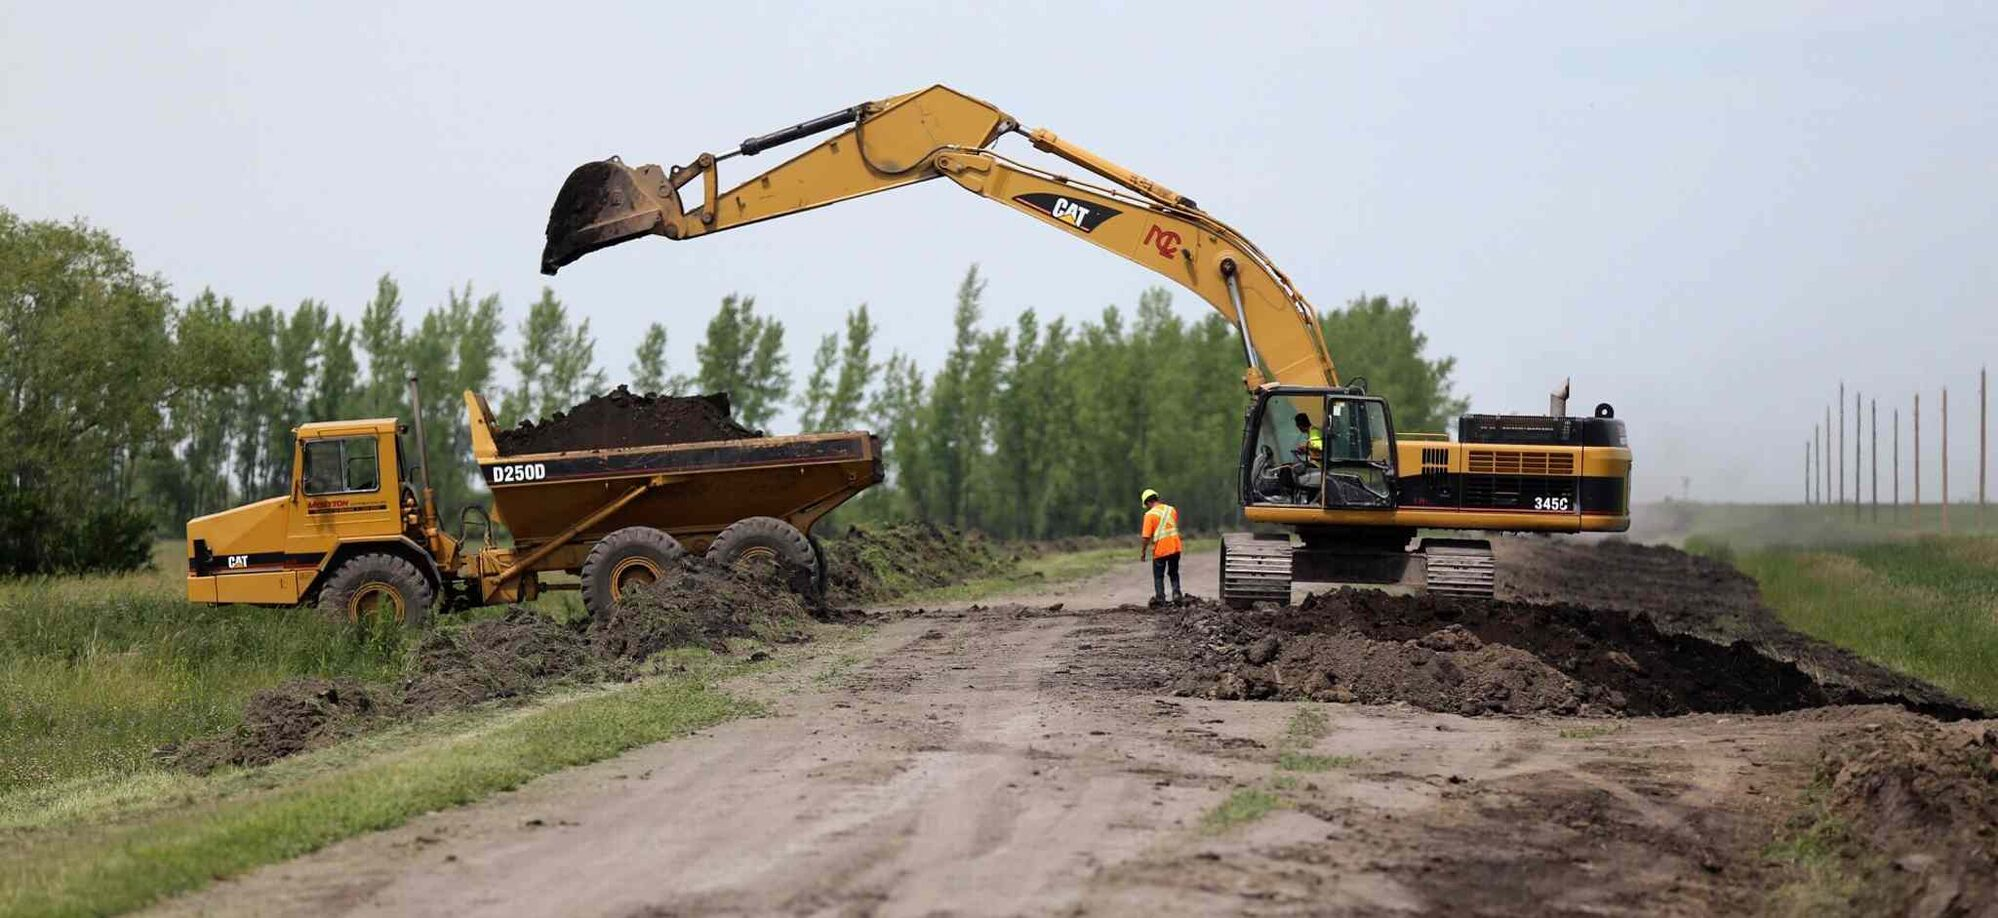 Construction crews work to bulk up the east side of the Portage Diversion near Highway 1. They are removing dirt from along the road and dumping it on the bank.